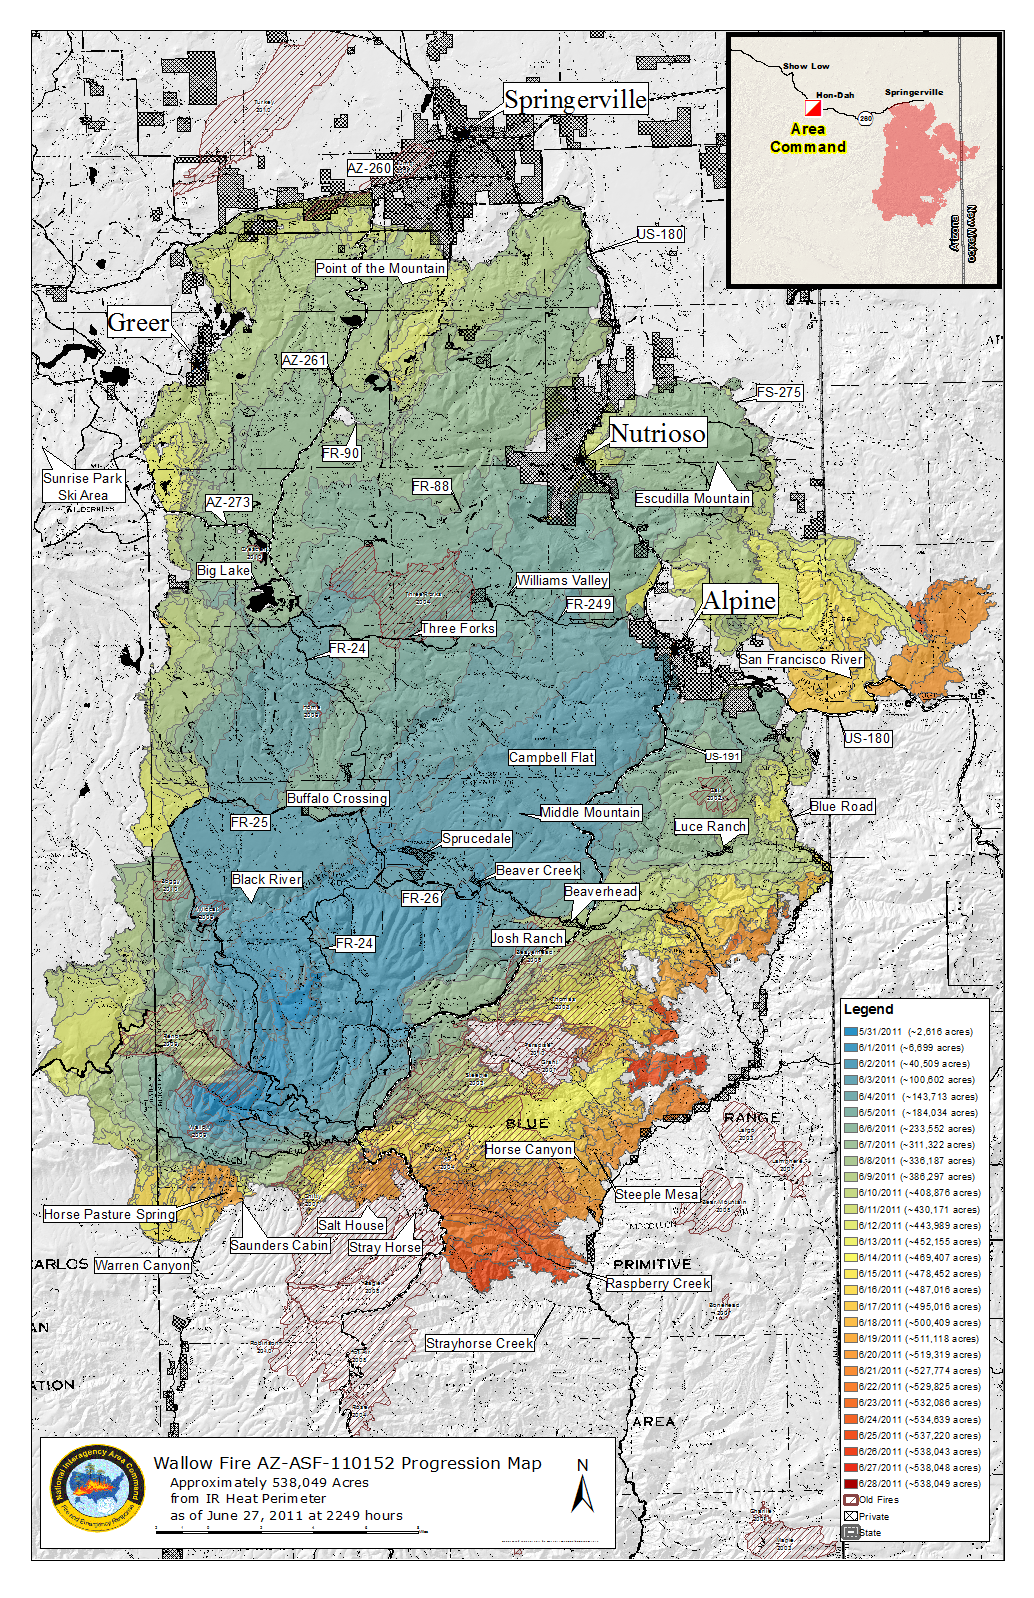 Wallow Fire progression map from June 28, 2011